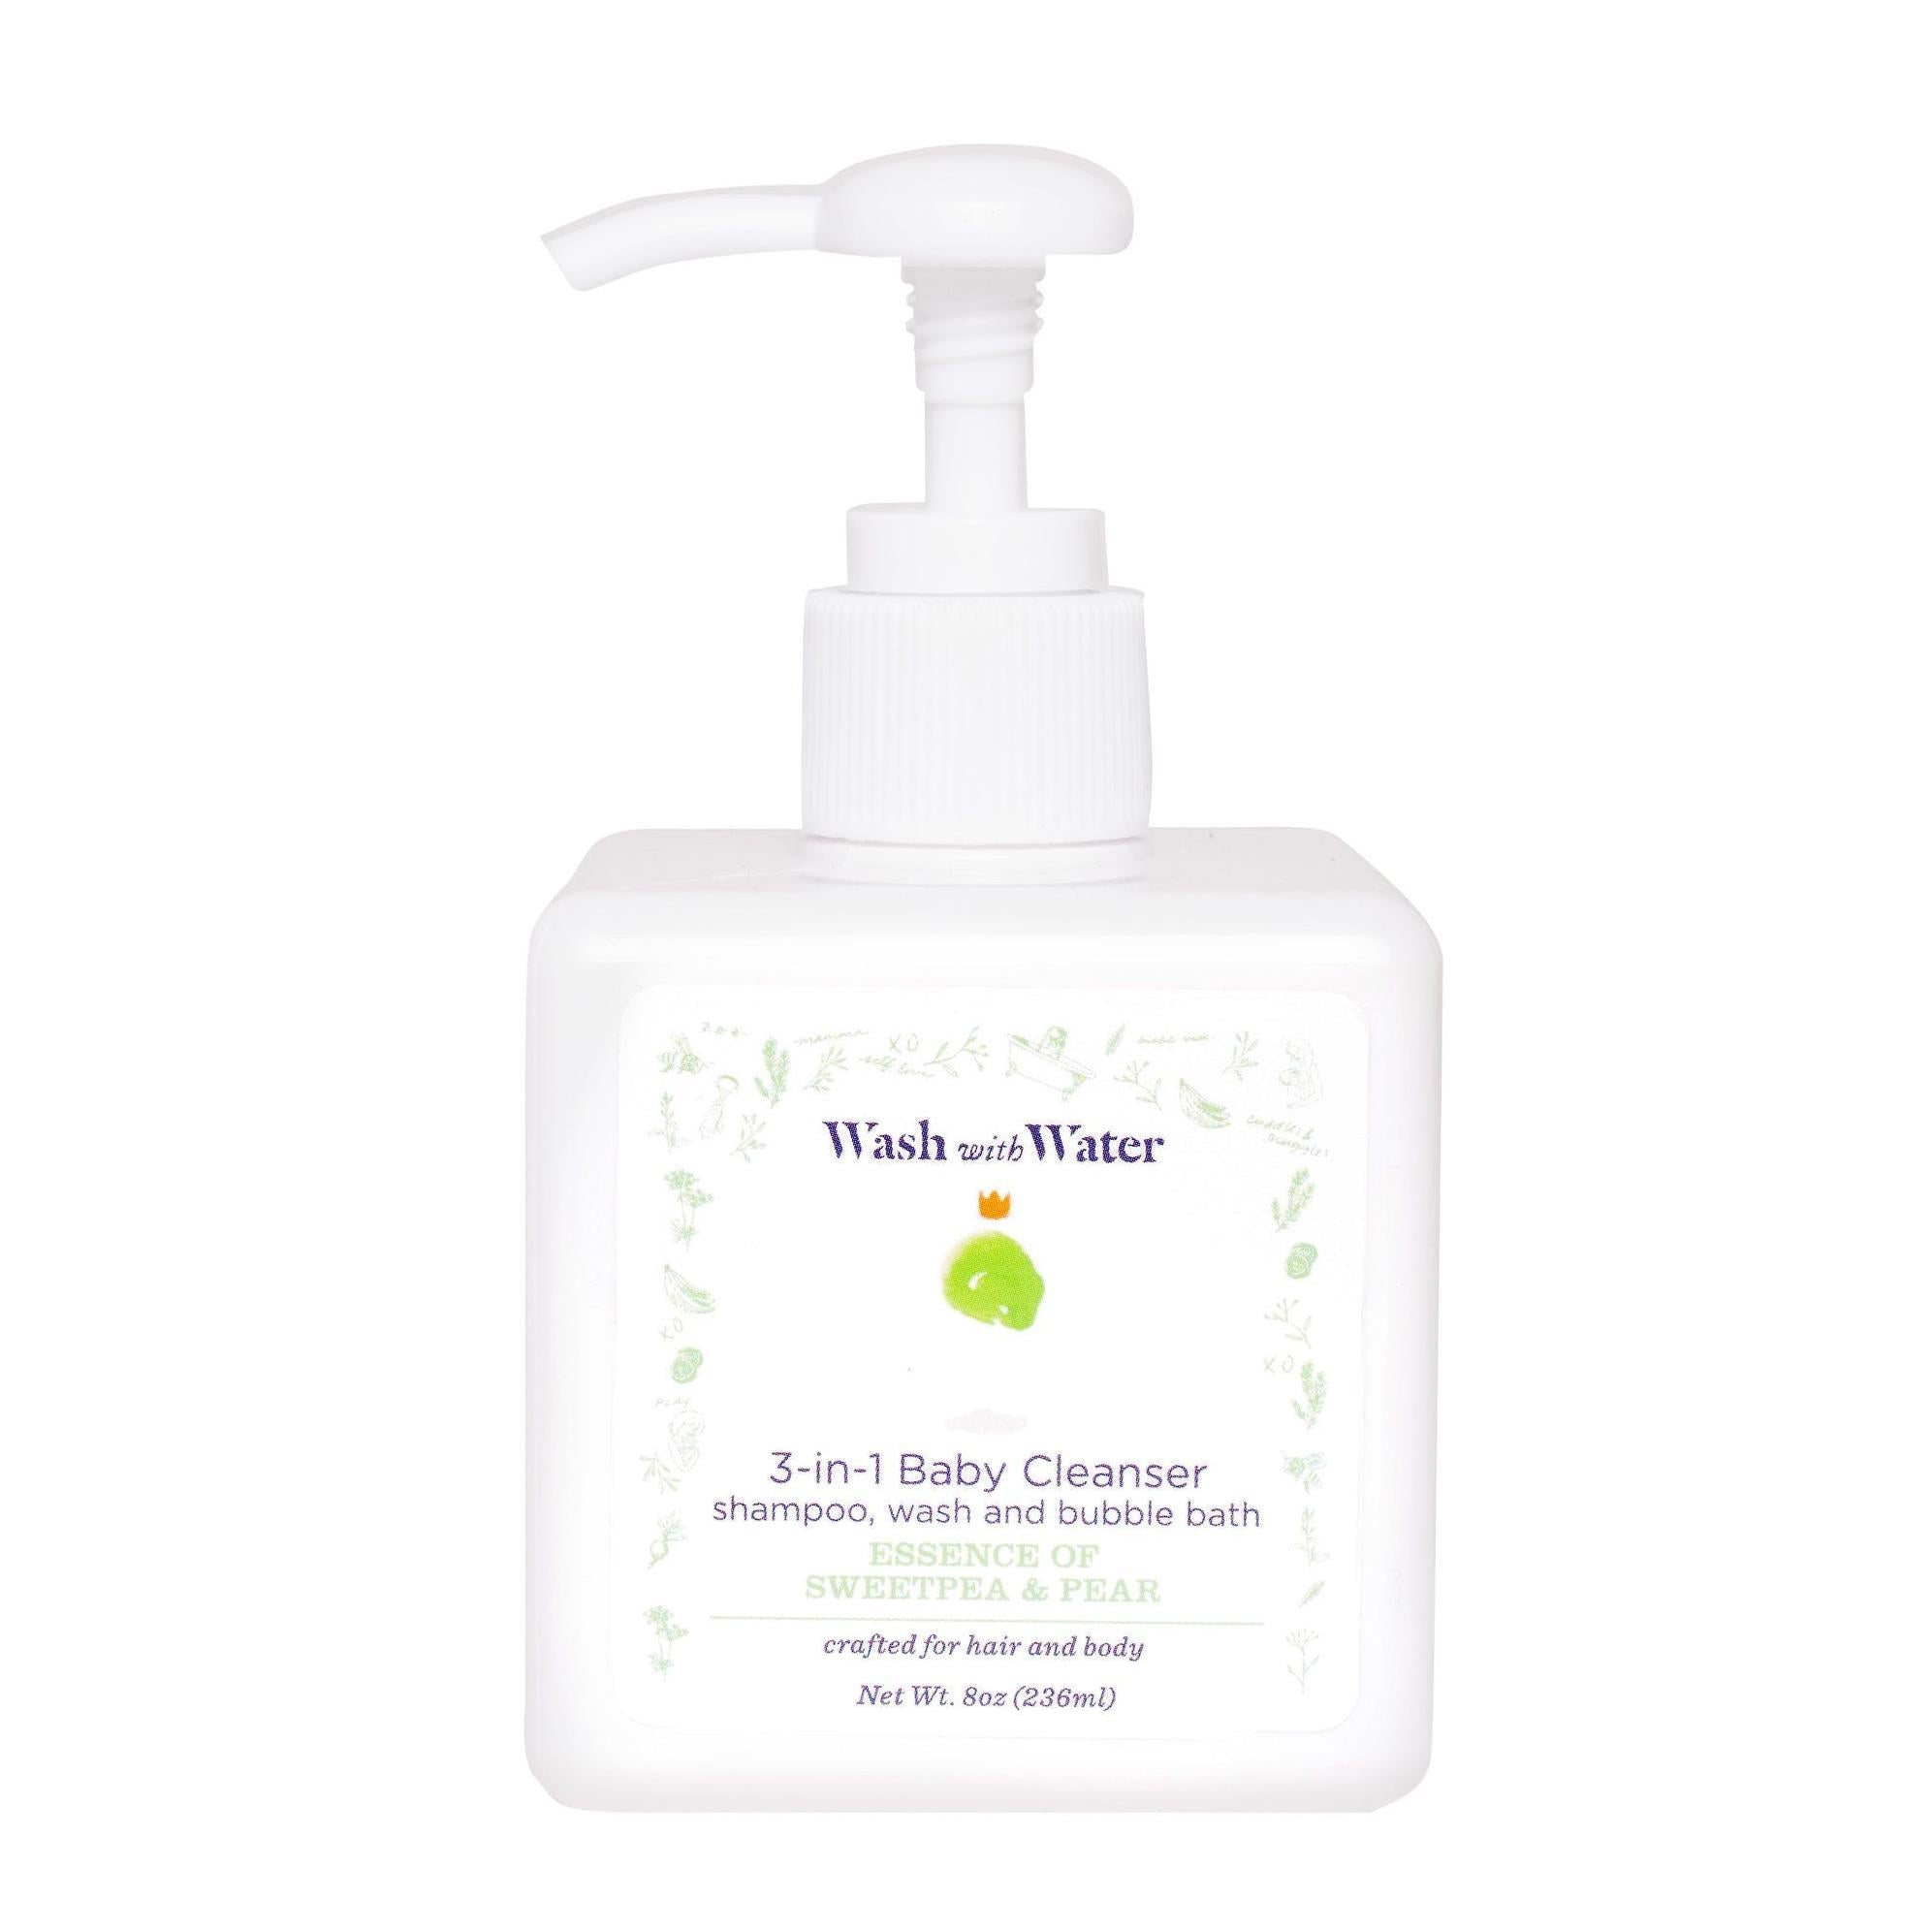 Wash with Water 2-in-1 Baby Cleanser